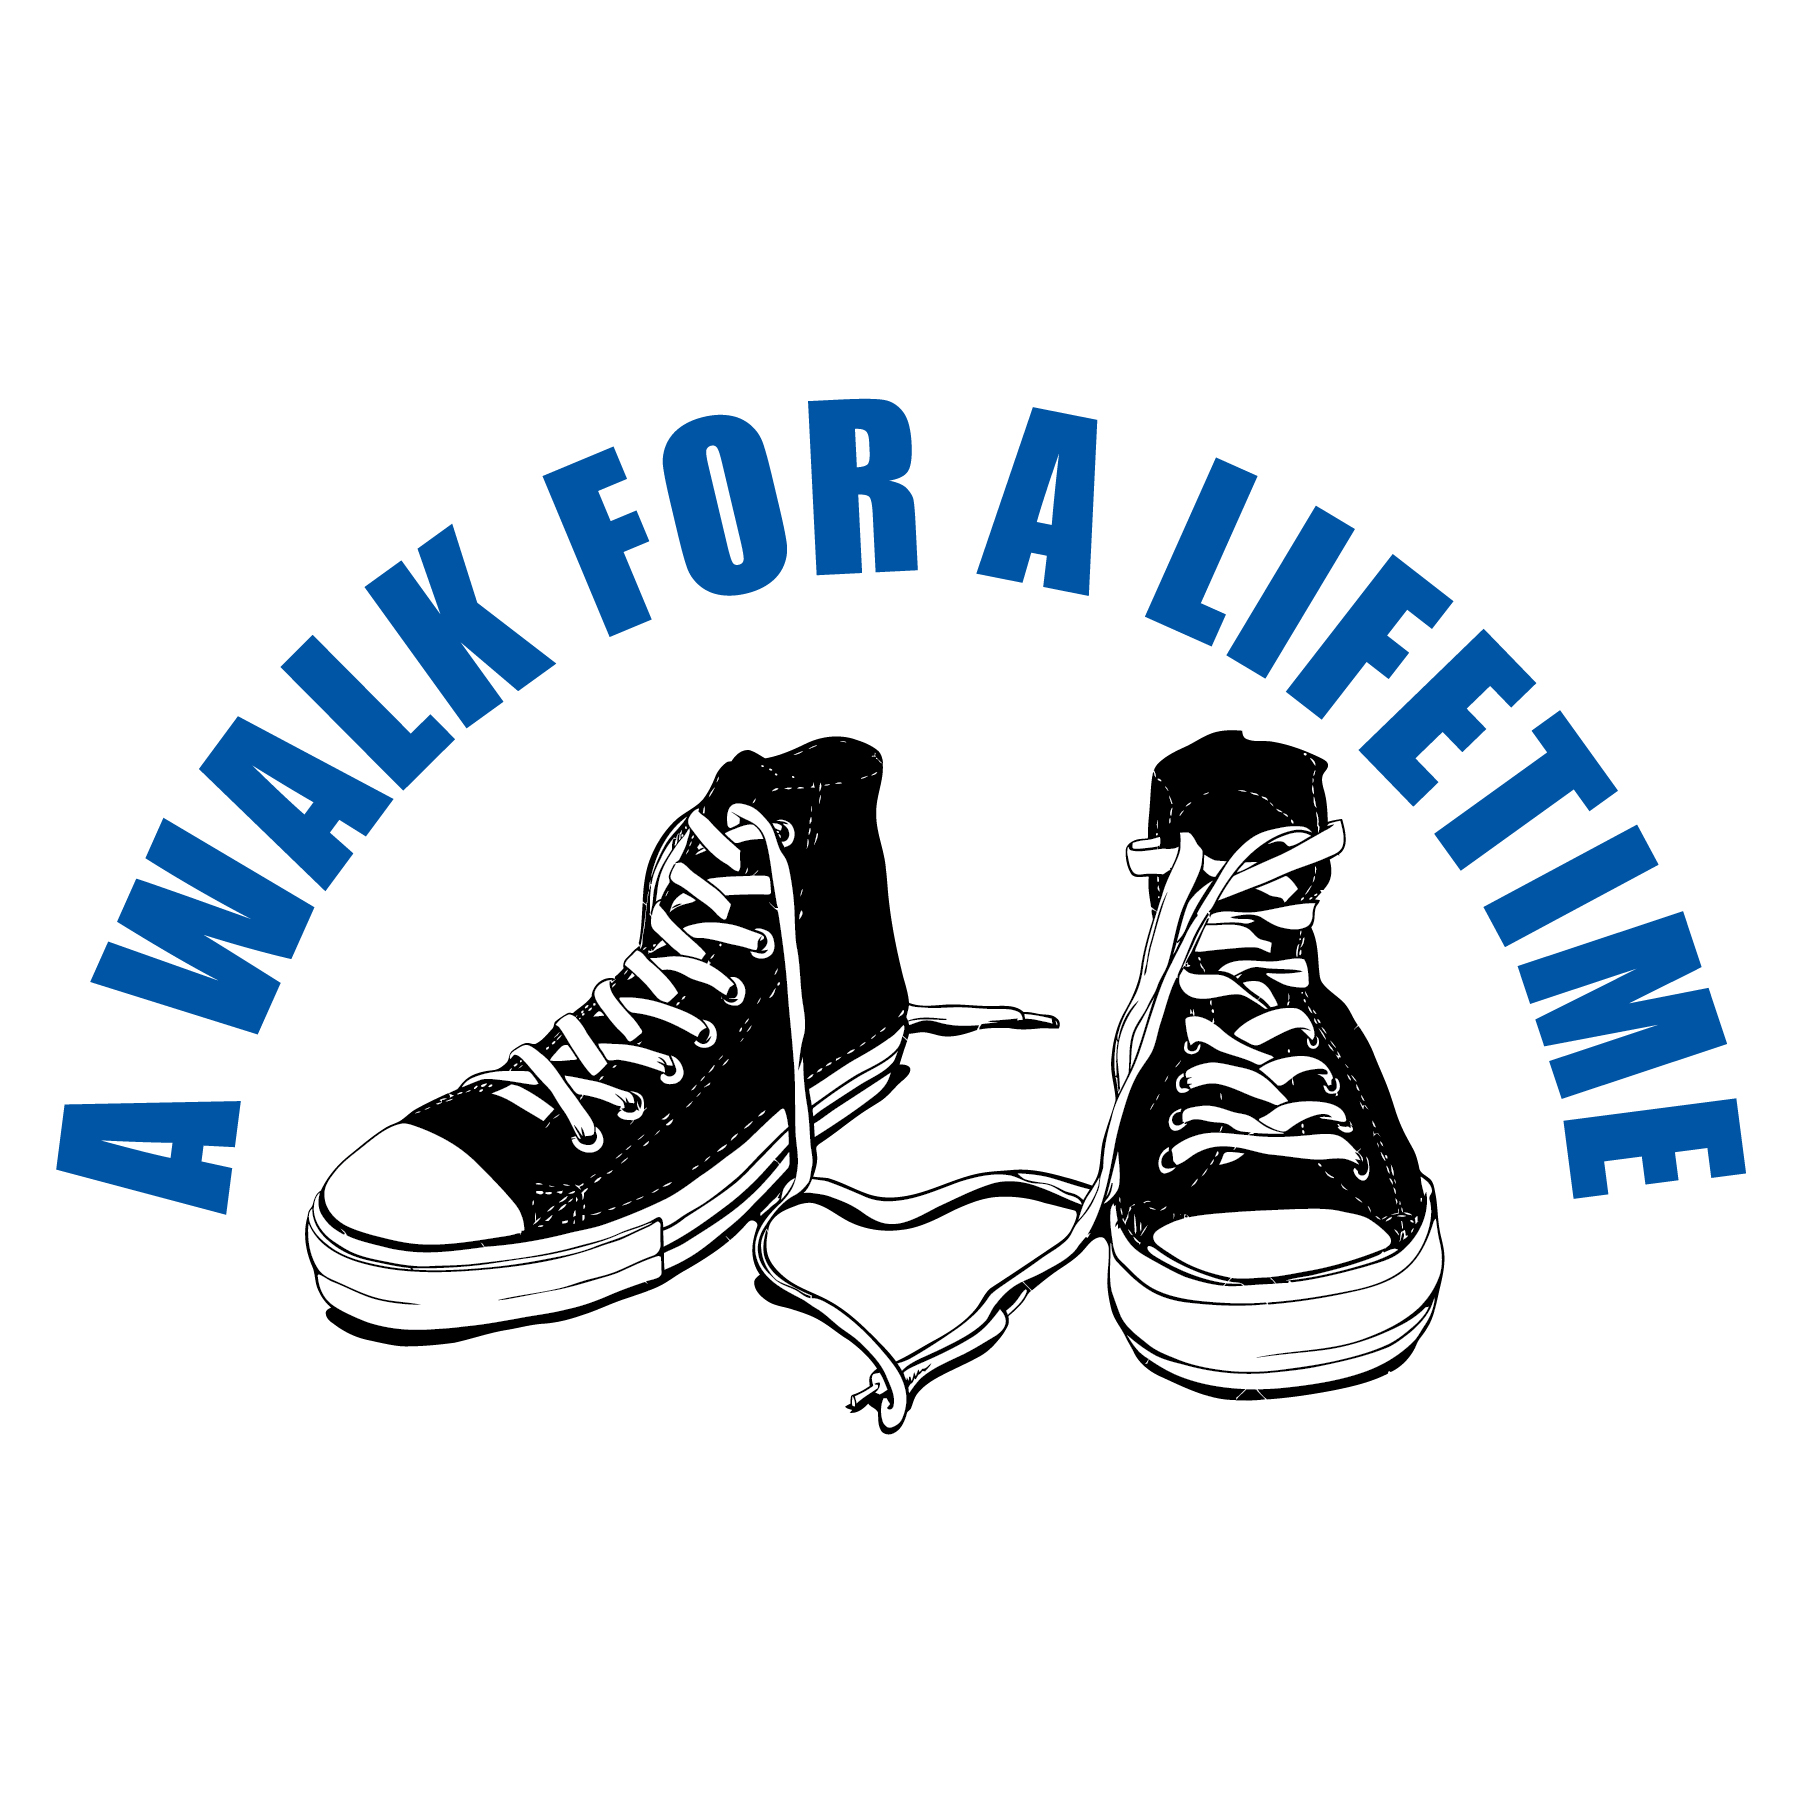 TCI's Walk for a Lifetime 2016 is on Sunday, May 1st in Verona Park  Registration is $10/person through March 1st with the price increasing to $15/person starting March 2nd-walk day  Day of registration available, children 3 and under are free  Registration can be done online at  www.tcischool.org/walk   Event supports TCI- a non-profit organization serving individuals ages 3-21+ on the autism spectrum and with related disabilities  Registration starts at 10am, Walk starts at 12noon (walk length about 1 mile)  Food, family activities (including face painting and bounce house), vendors and much more!